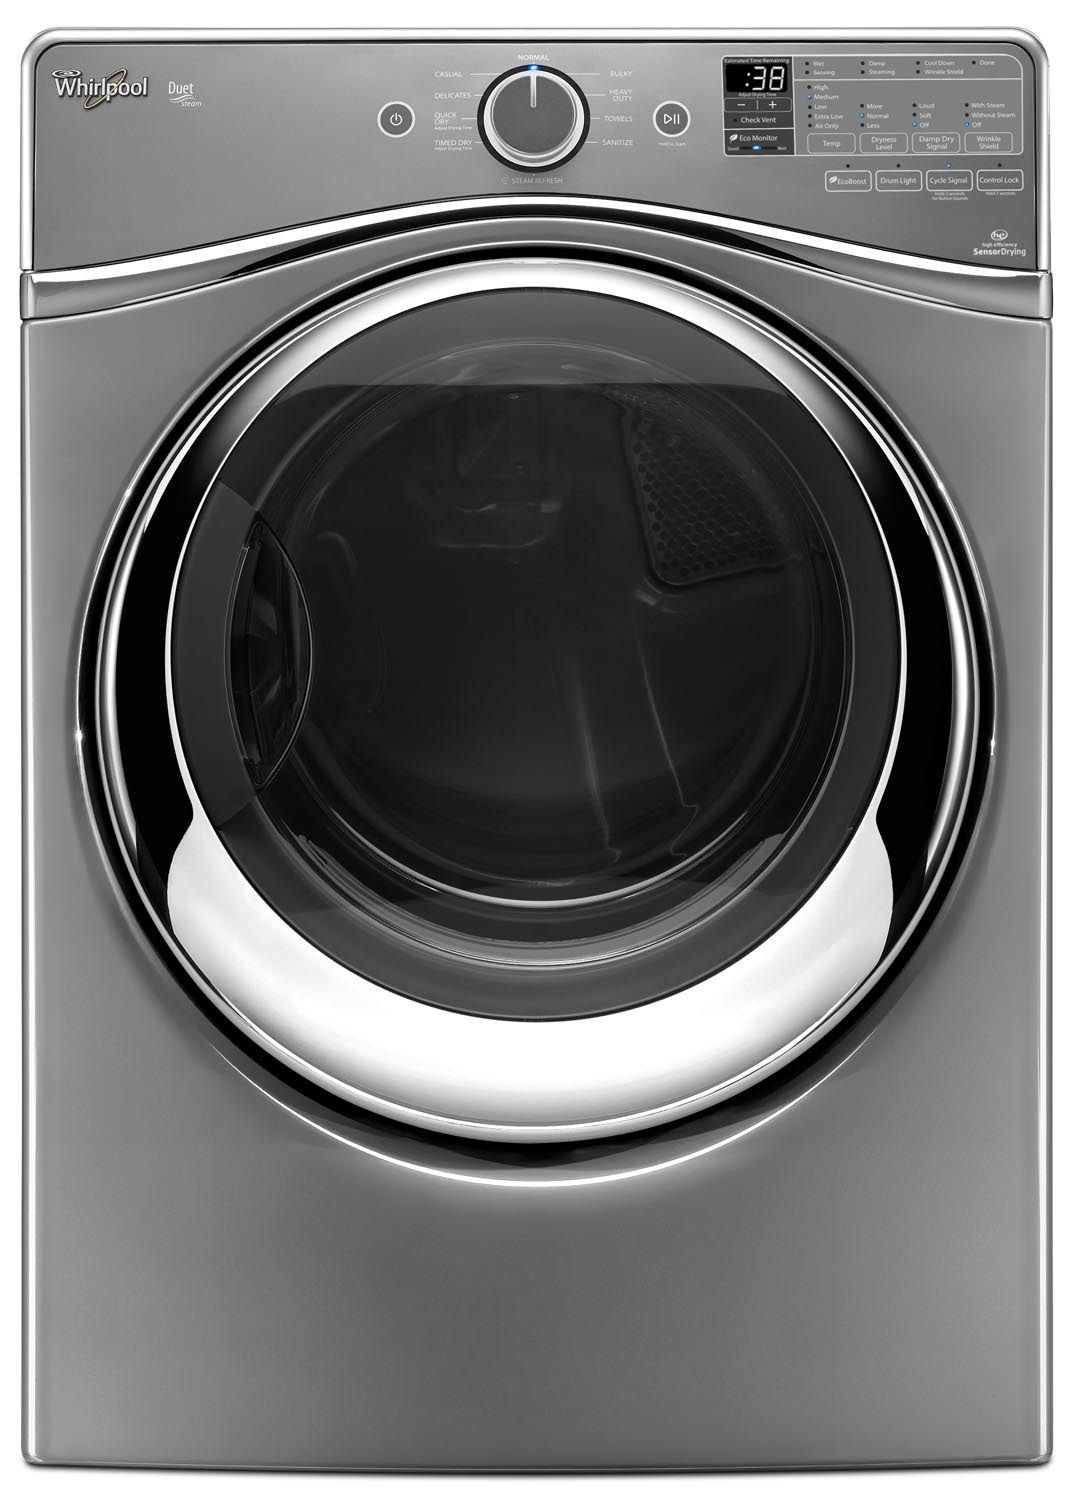 Washers and Dryers - Whirlpool Dryer (7.3 Cu. Ft.) YWED95HEDC